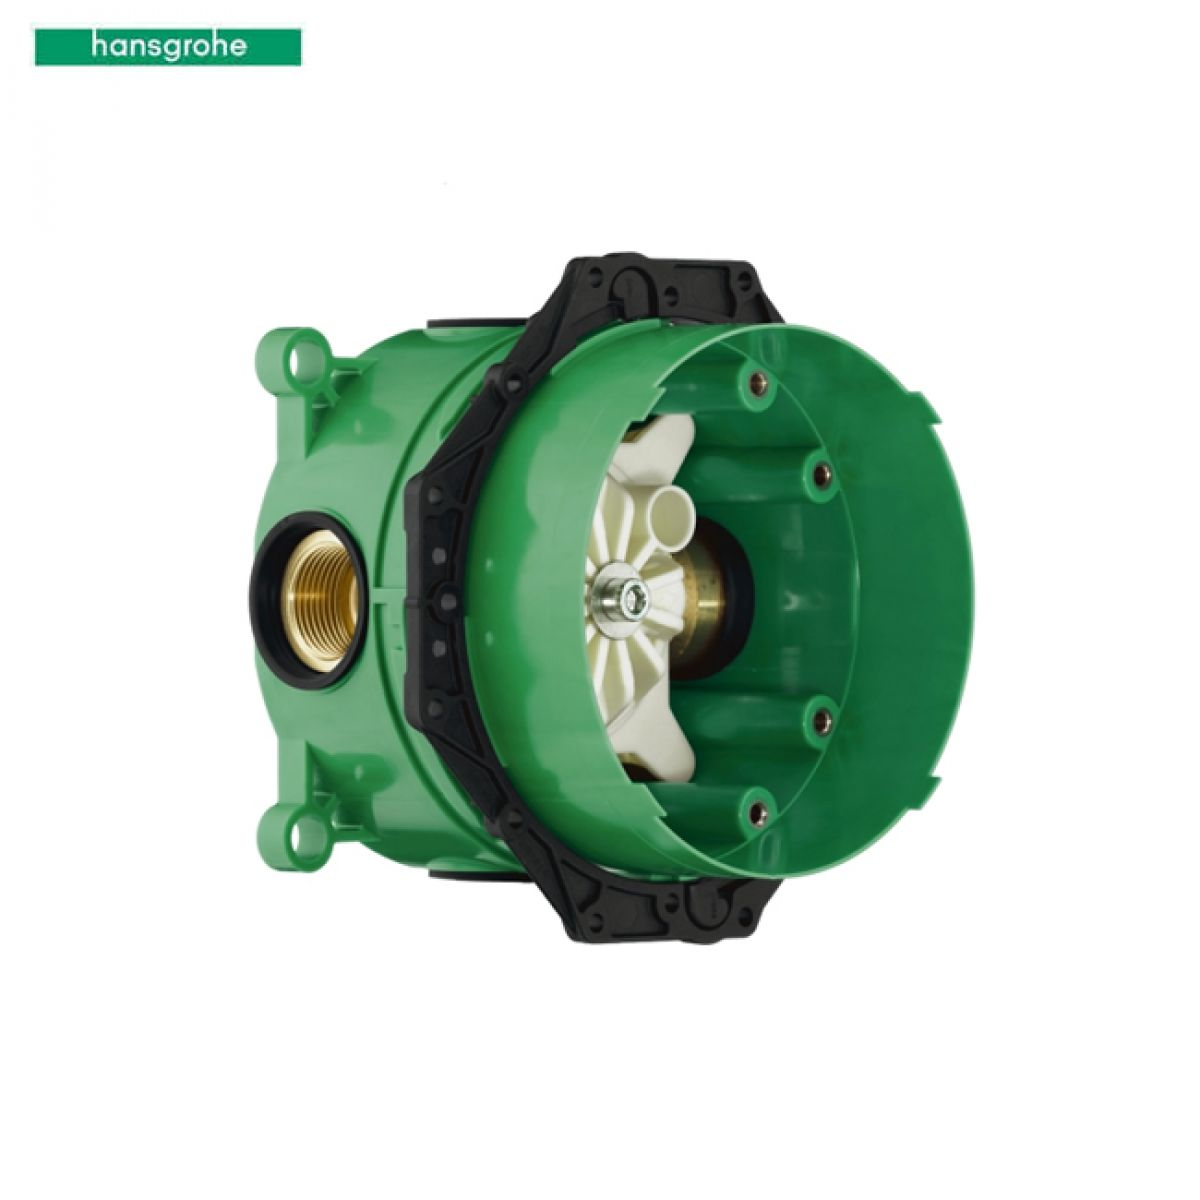 hansgrohe shower valve. Hansgrohe Ecostat S Concealed Shower Valve E